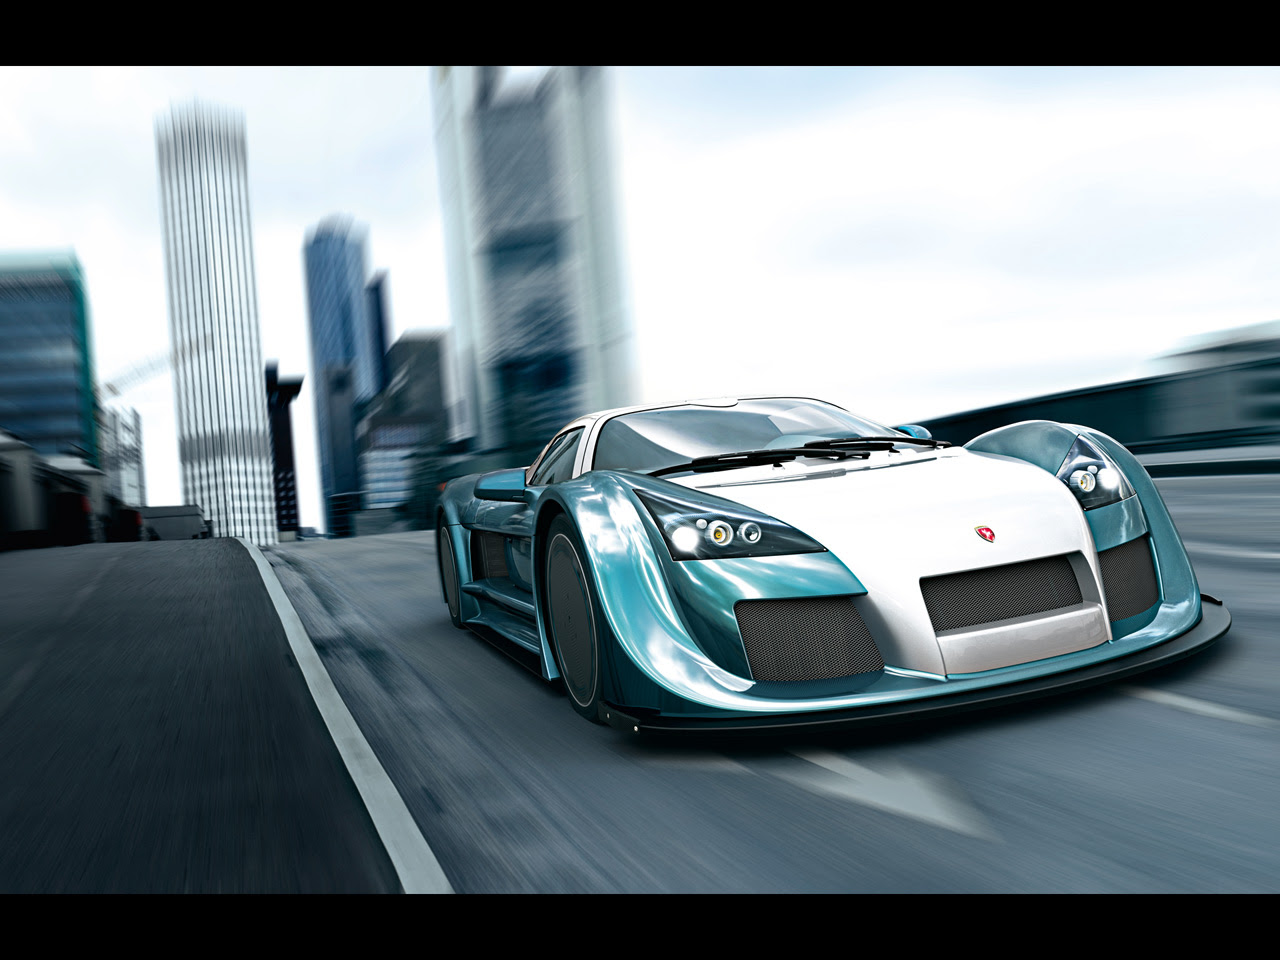 50 Super Sports Car Wallpapers Thatll Blow Your Desktop Away